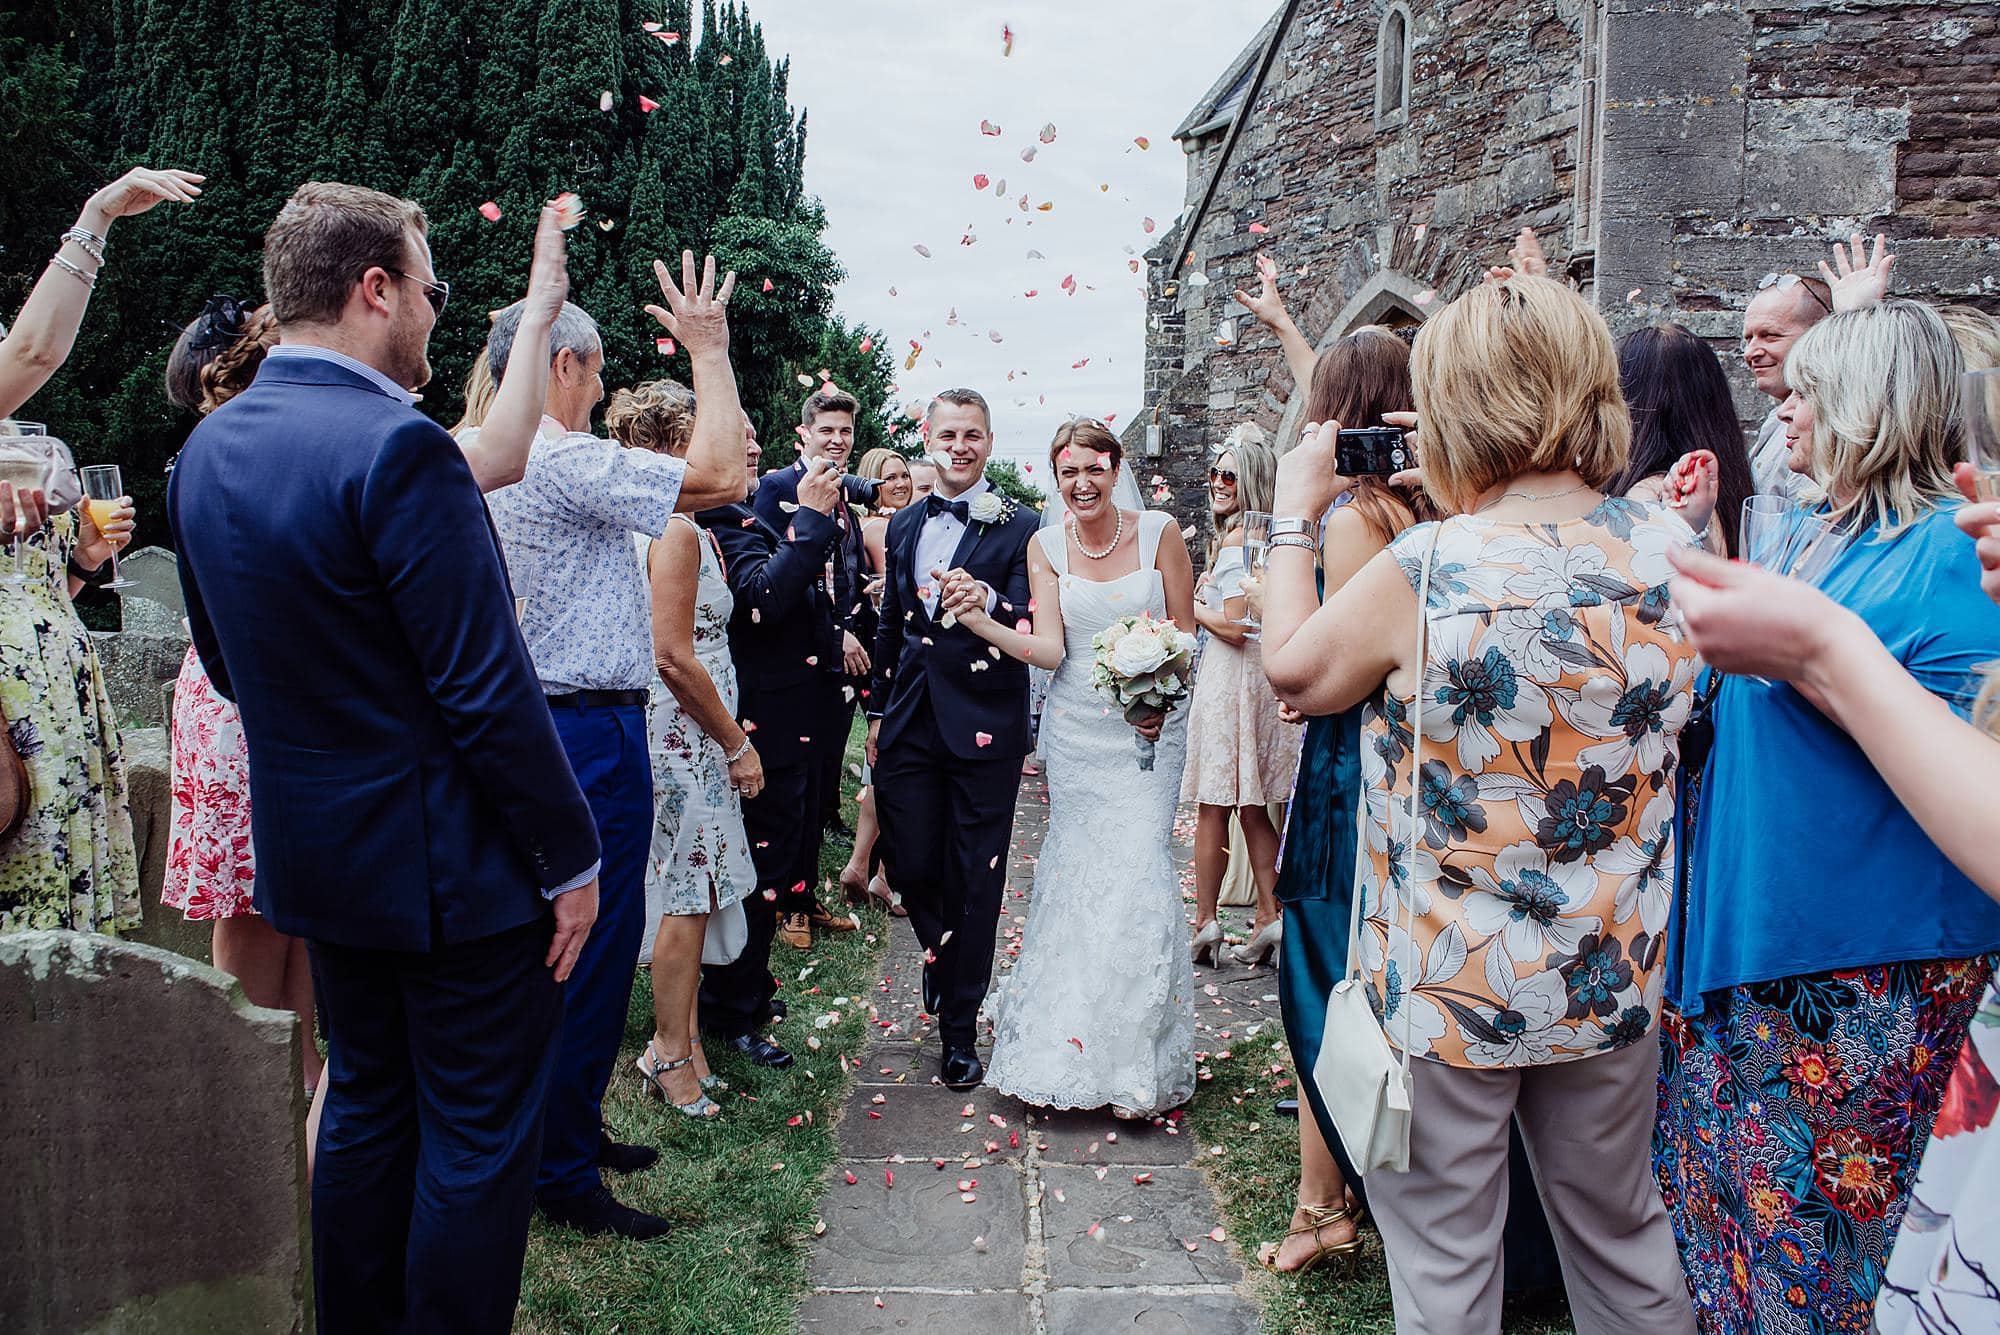 guests throwing confetti as bride and groom walk past them in the grounds of St Michael's church Winterborne